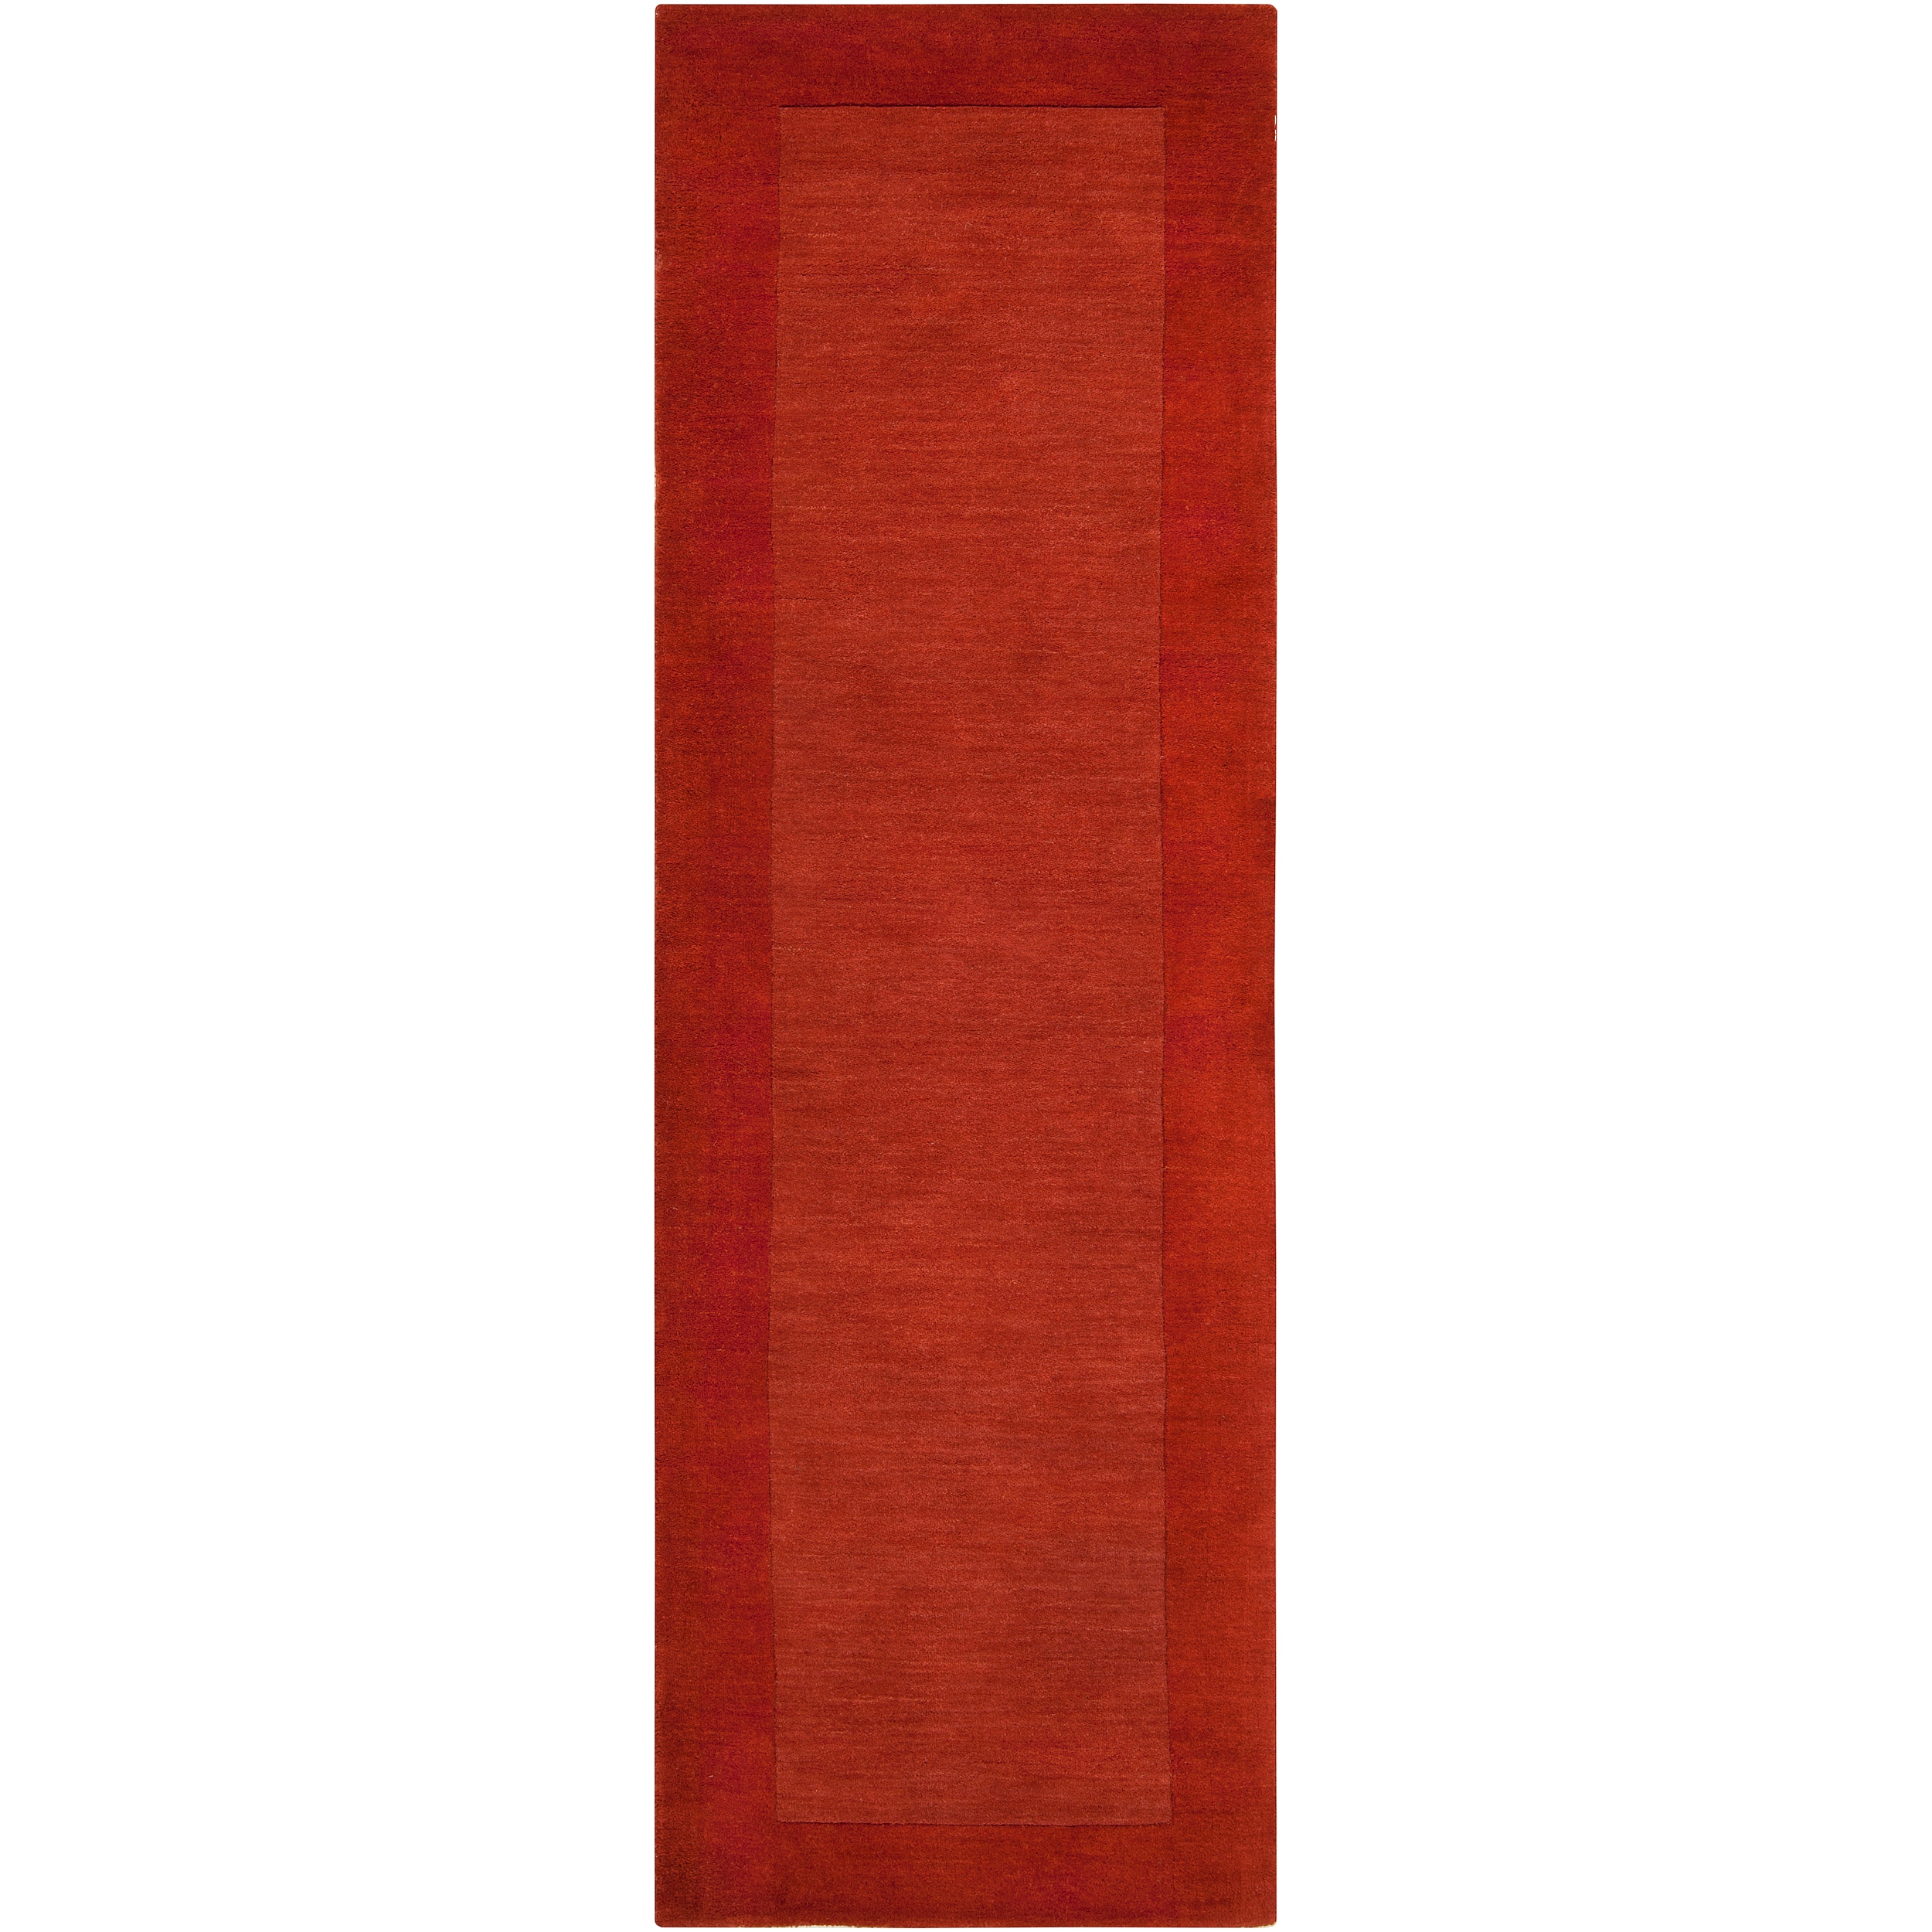 Hand-crafted Orange Tone-On-Tone Bordered Pechora Wool Rug (2'6 x 8')